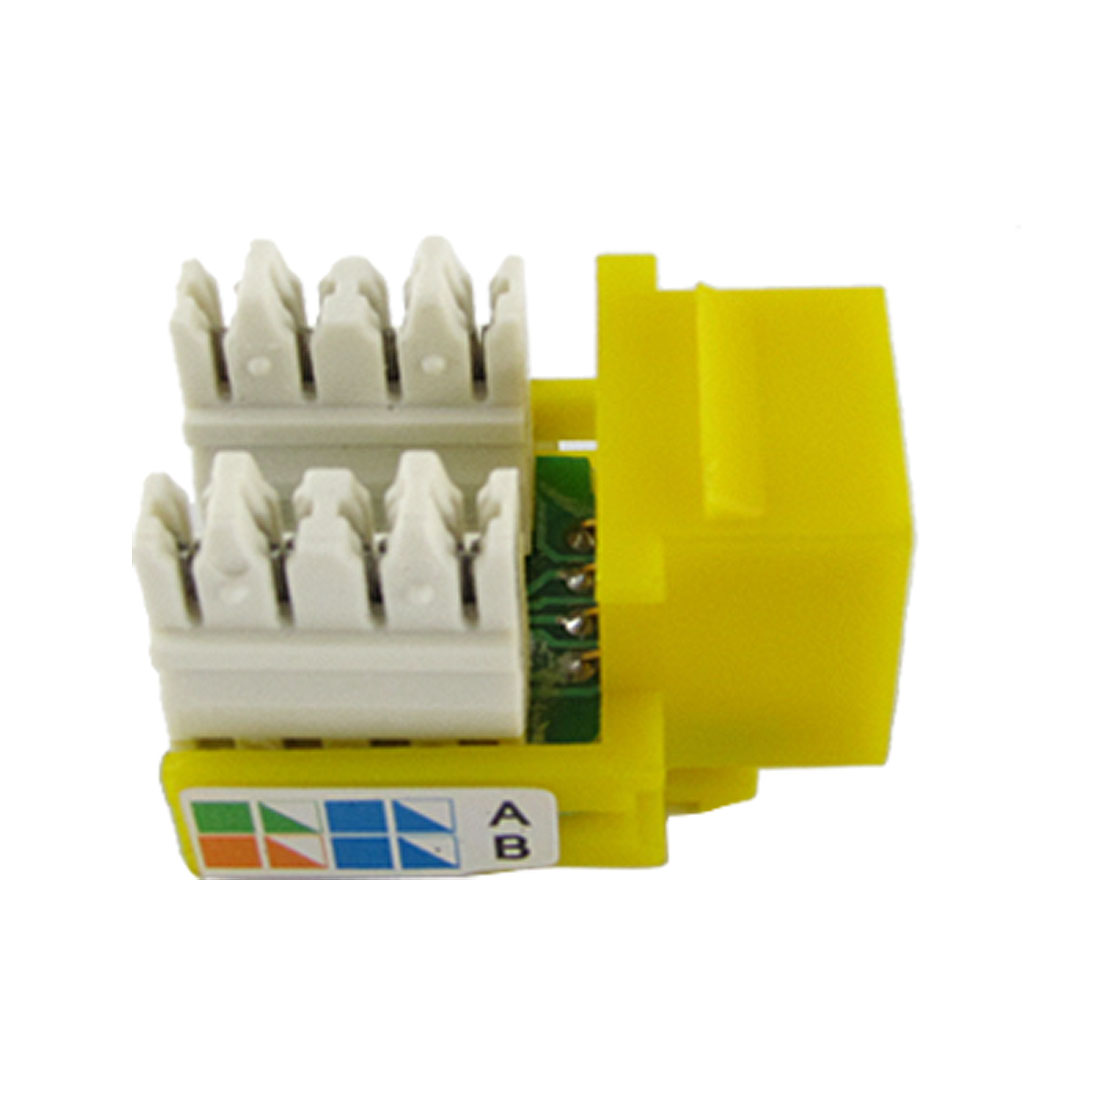 Yellow Network Computers Devices Connecting CAT5e RJ45 Jack